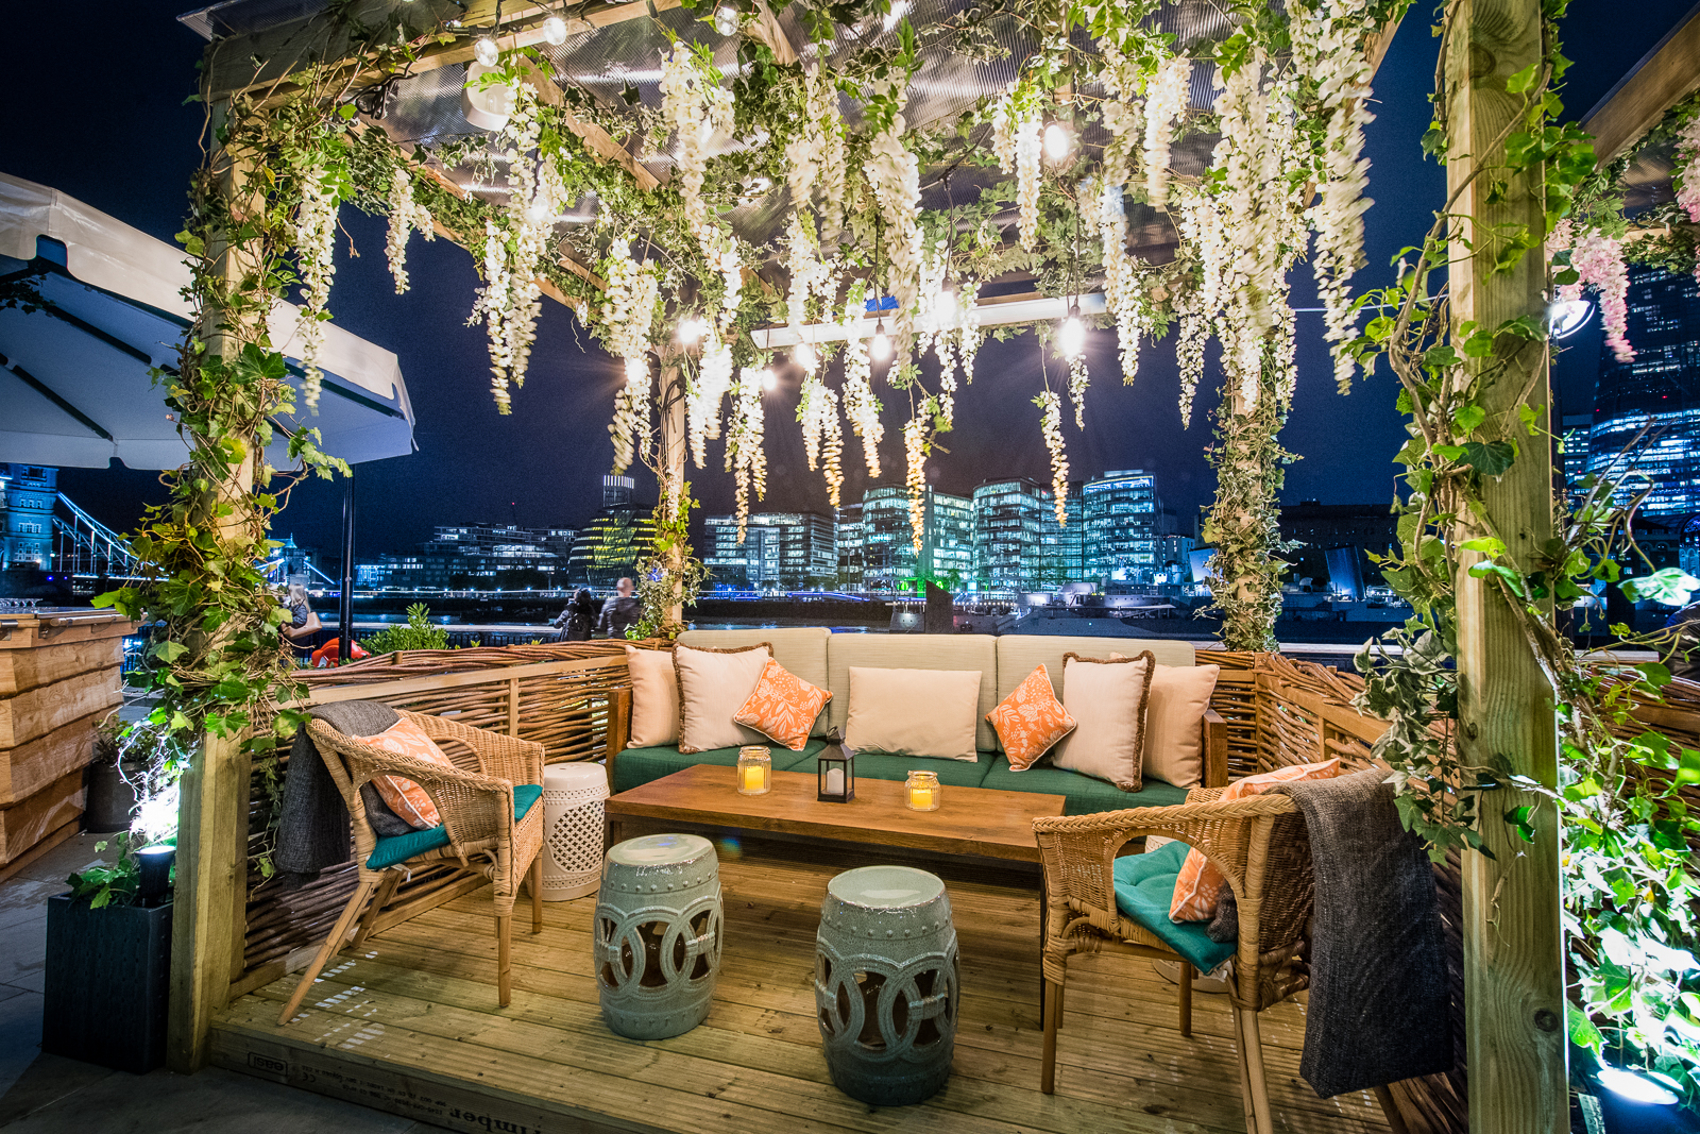 A coppa club cabana at night time that can be rented on the river thames